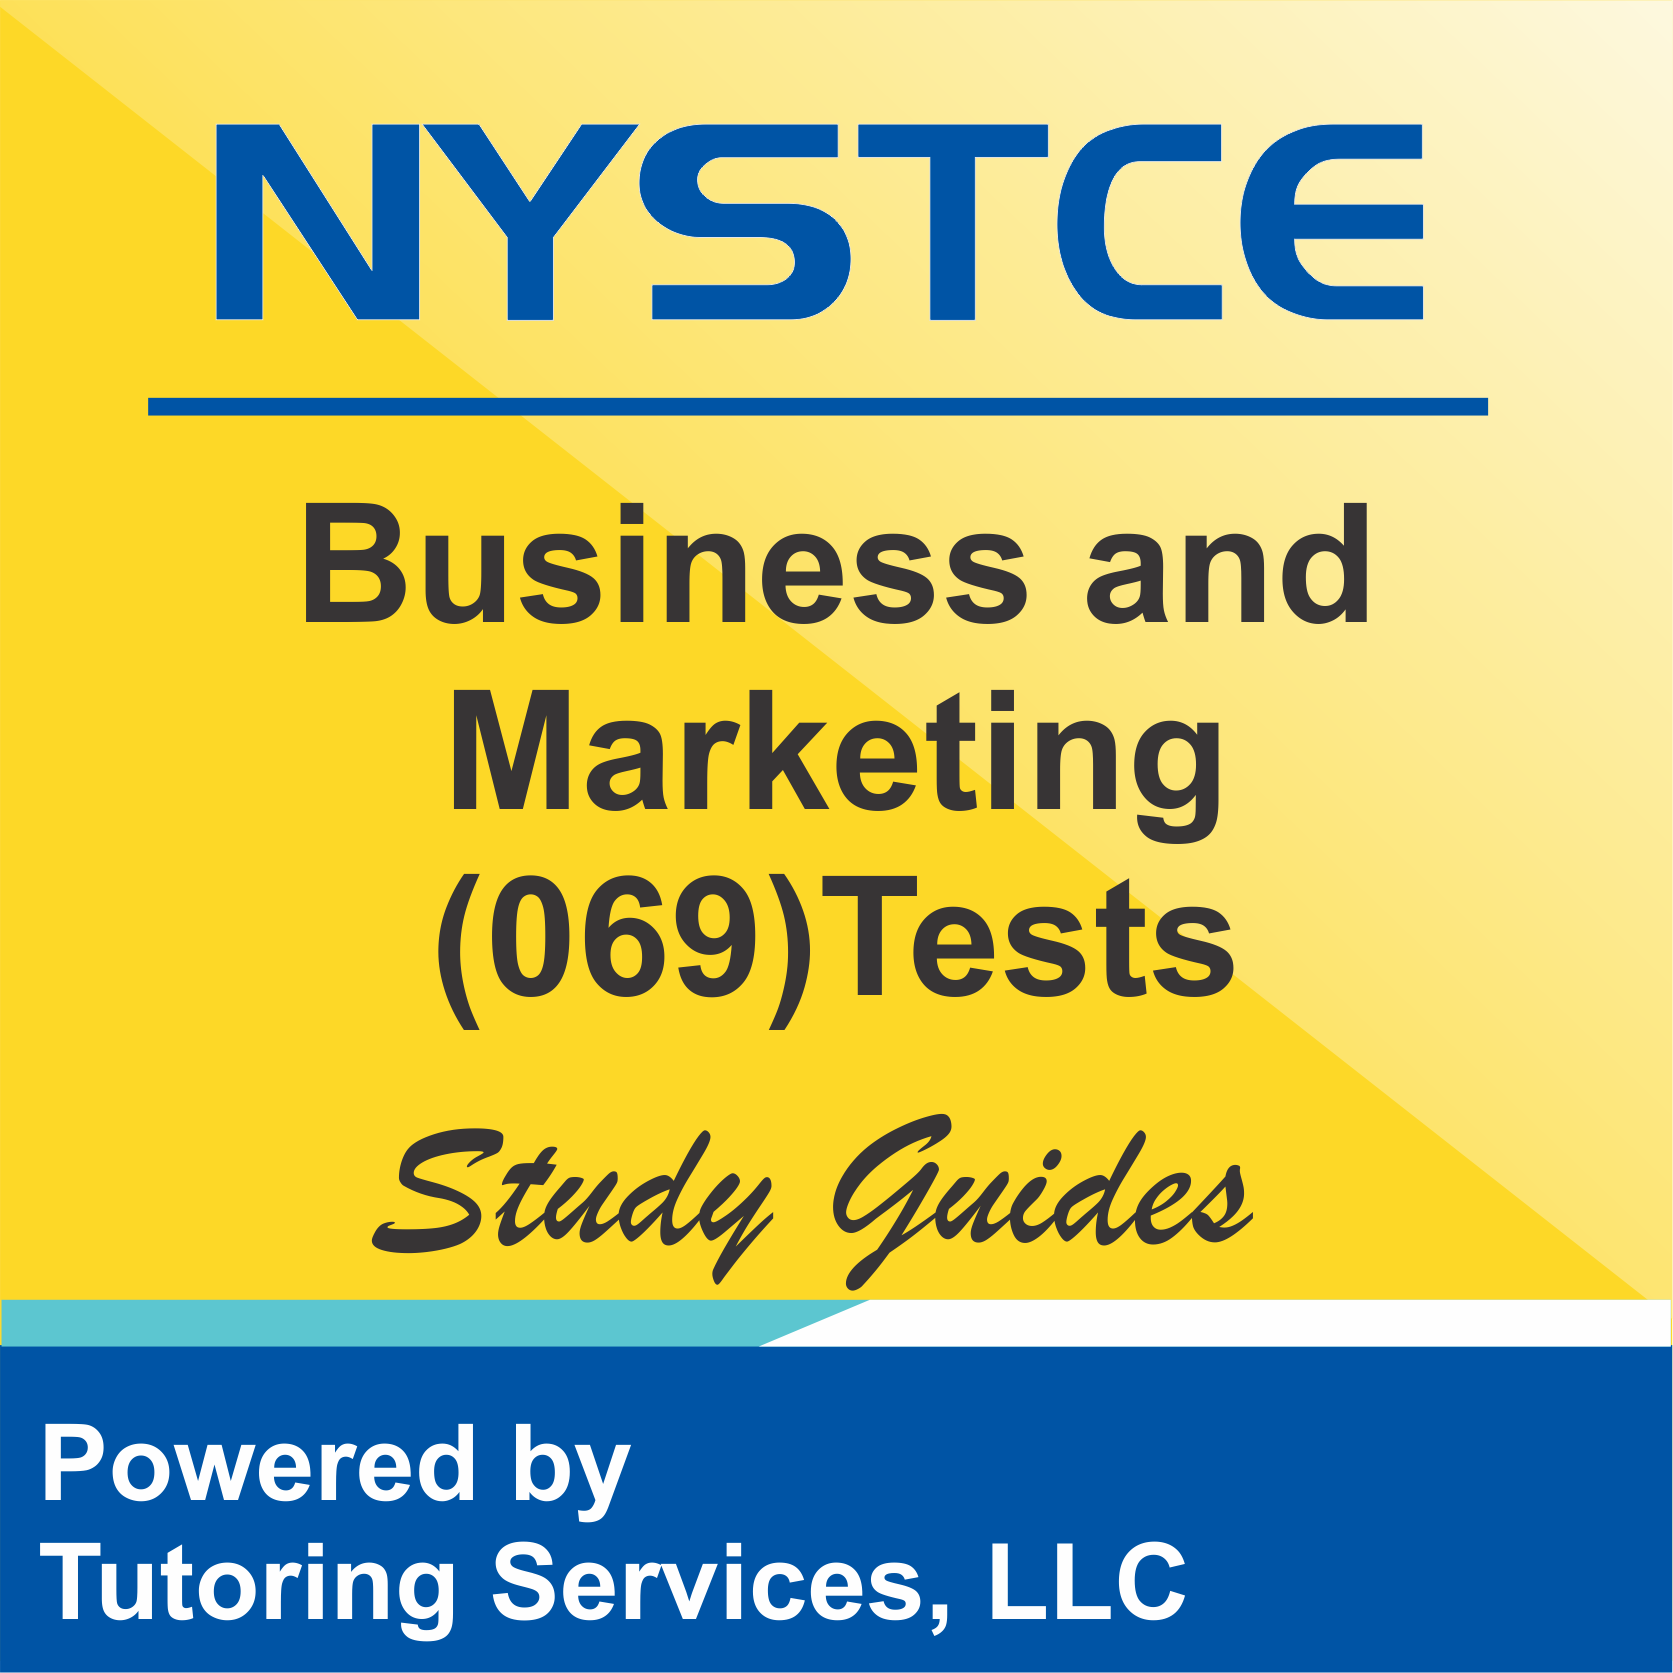 NYSTCE Licensure Test and Exam Details for Business and Marketing 069